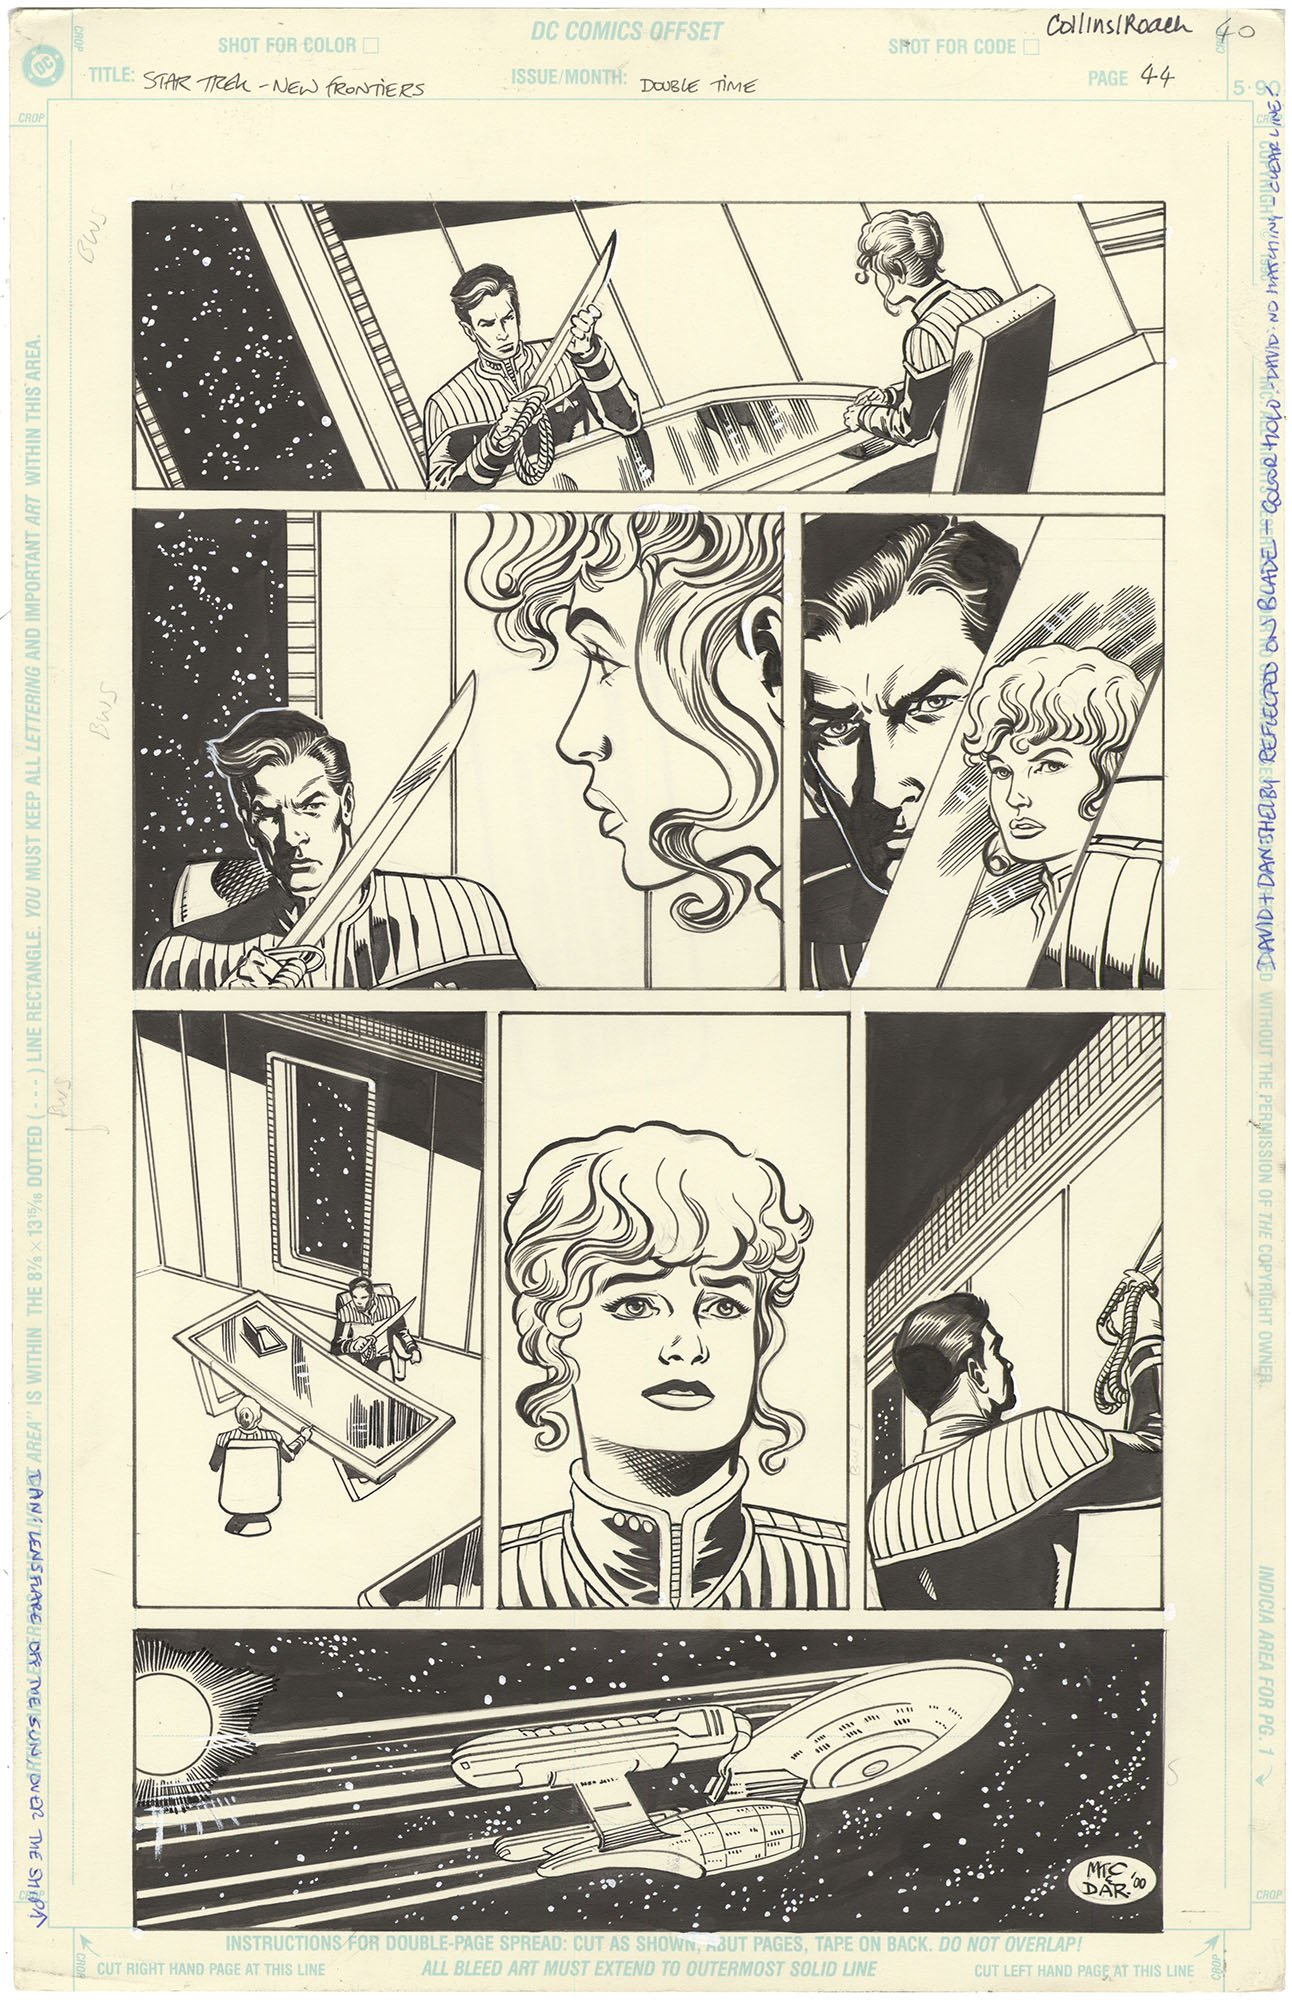 Star Trek: The New Frontier - Double Time #1 p44